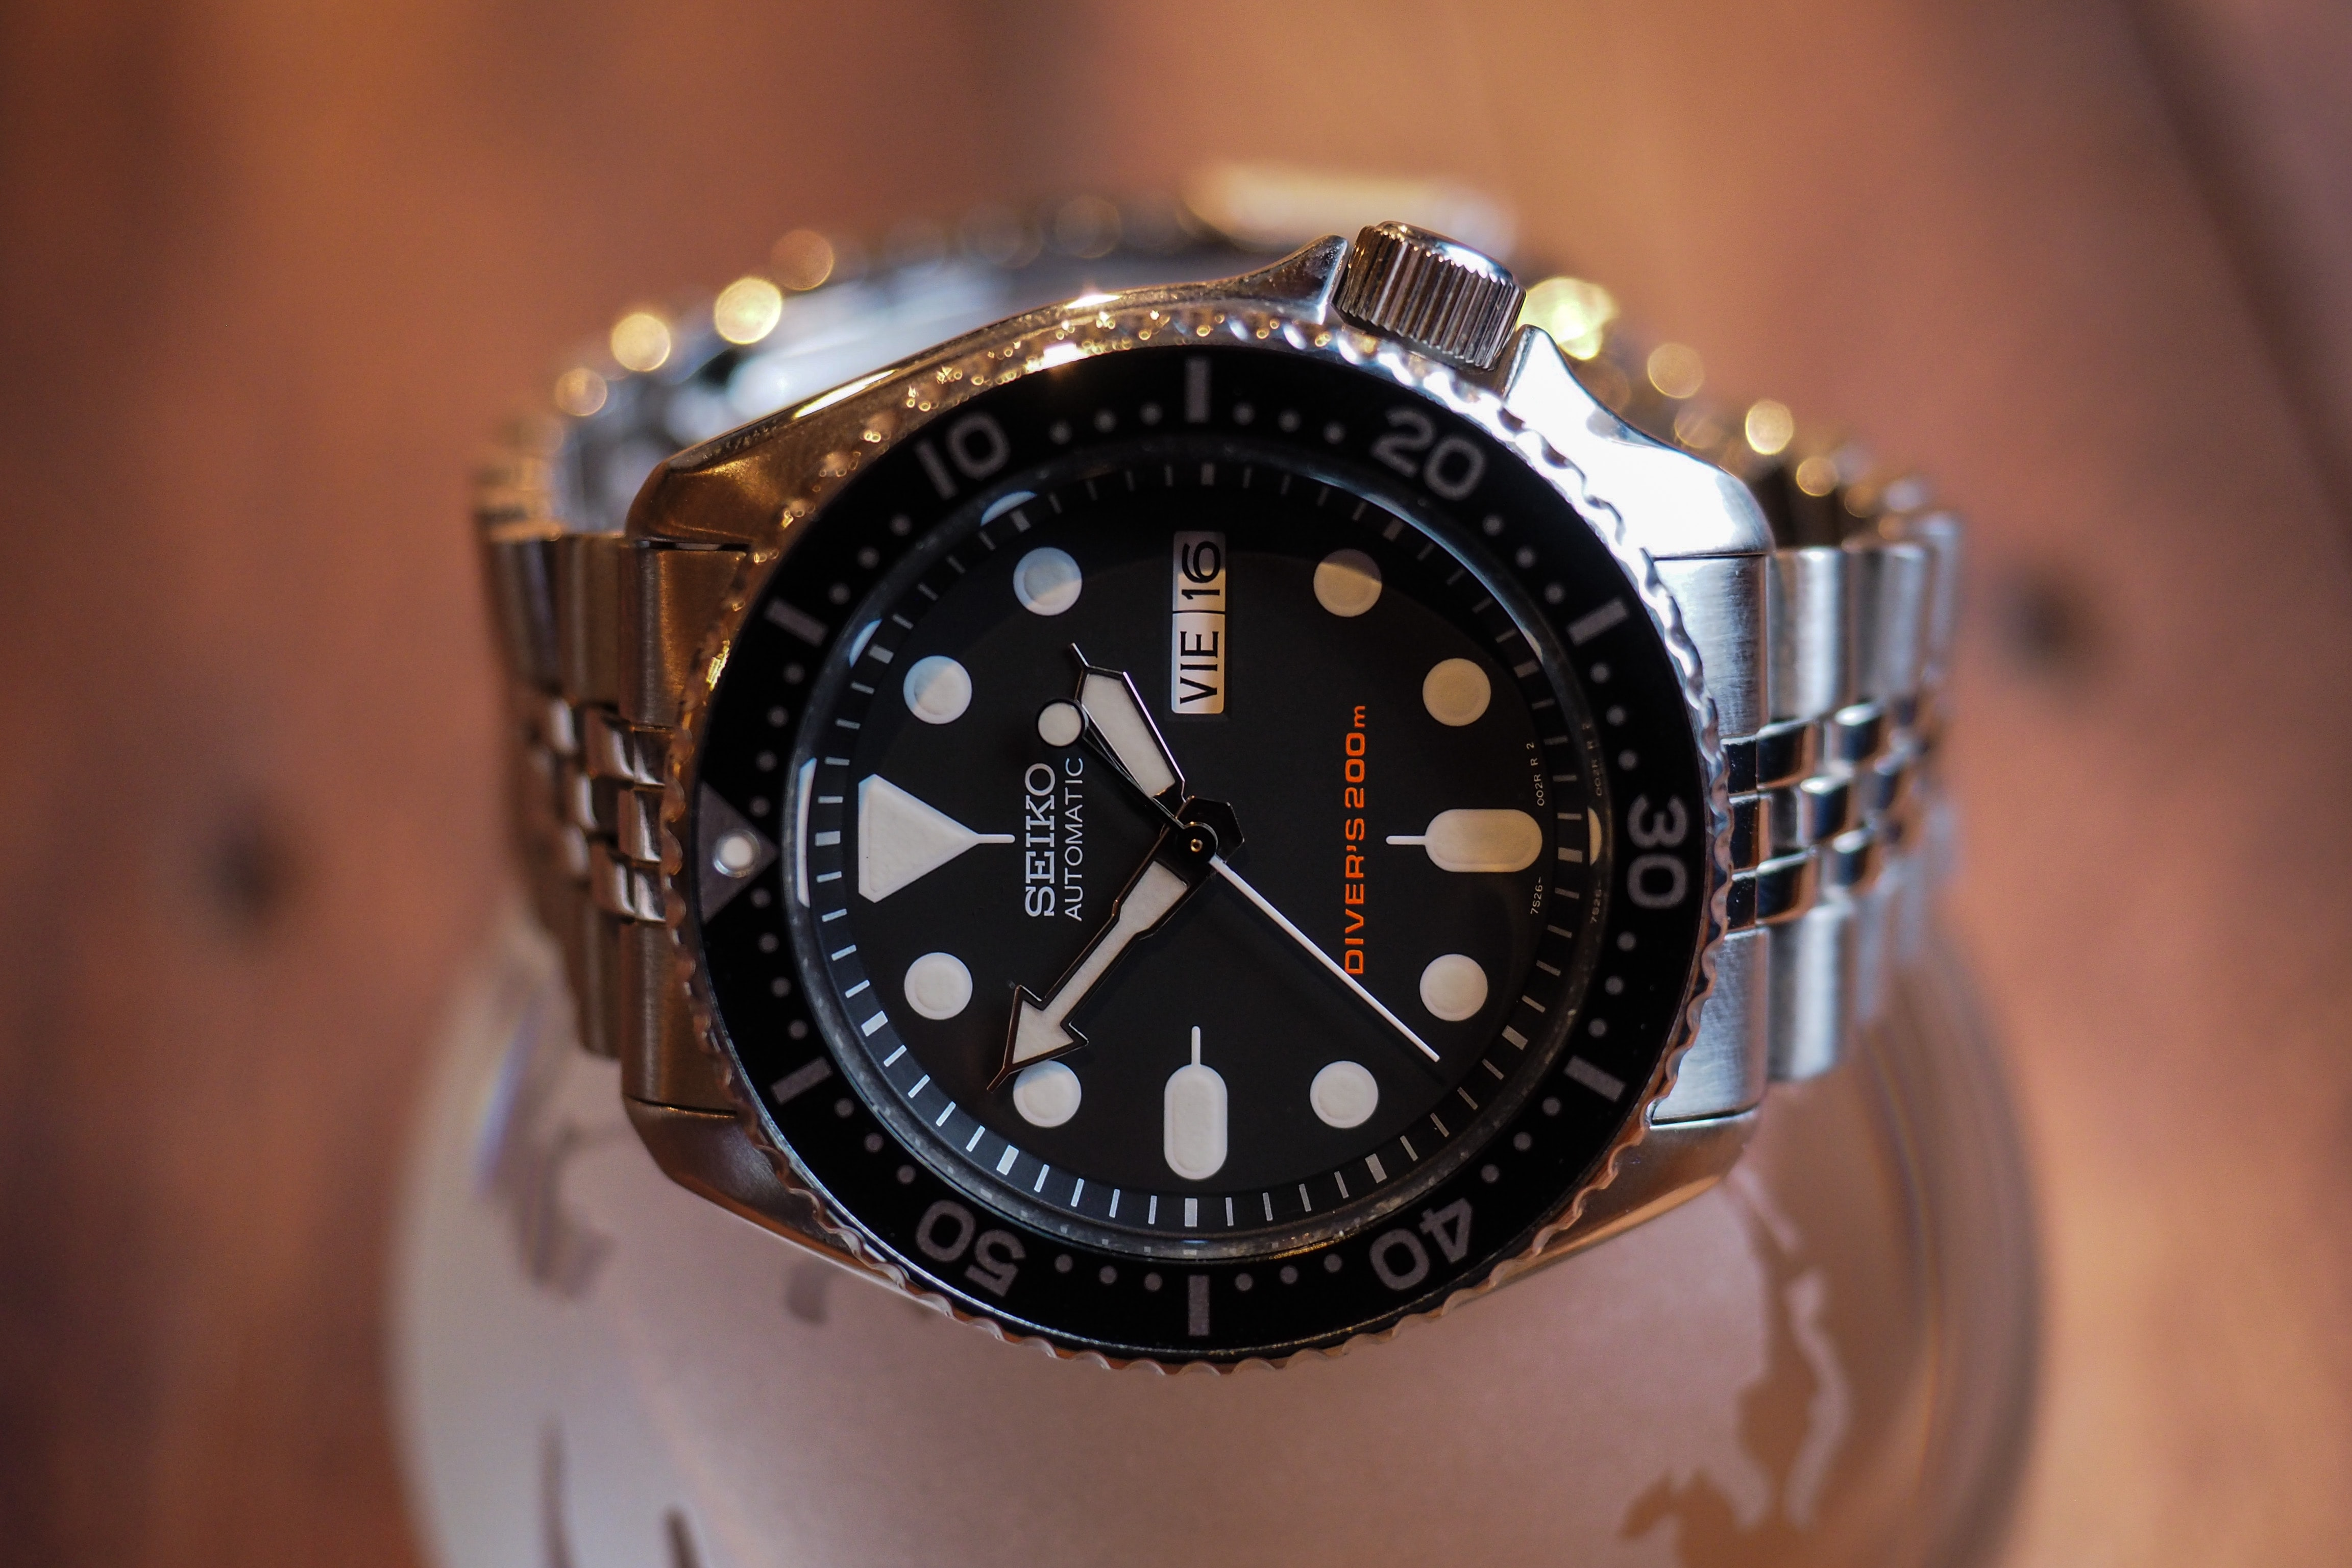 Hands On The New Seiko Prospex 200m Divers Srp775 And